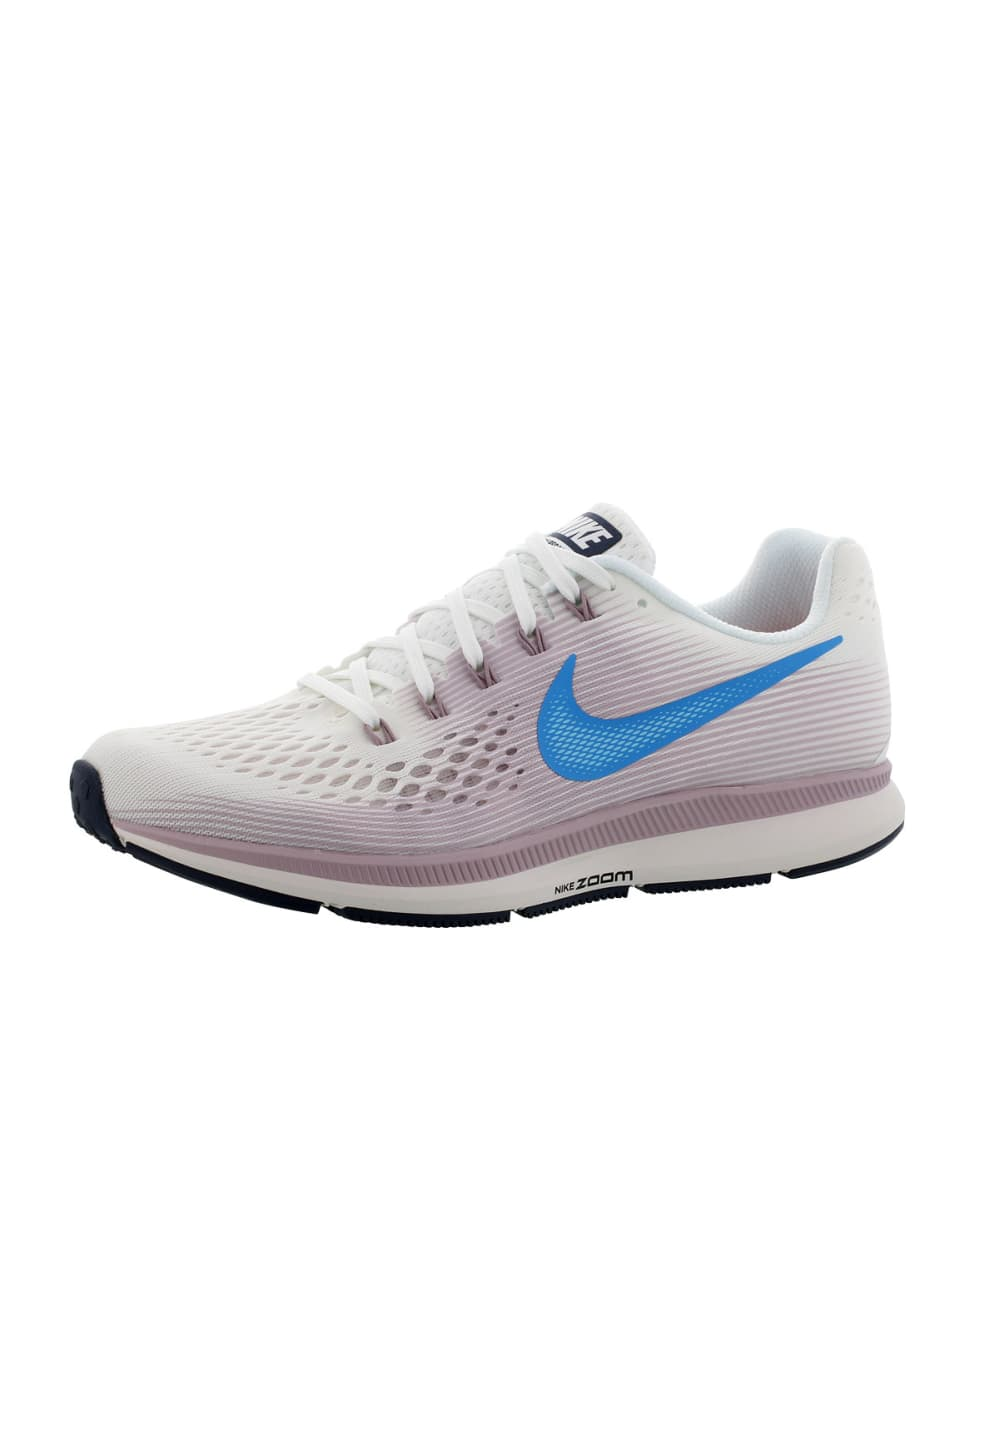 cheap for discount 77238 74440 Next. -60%. Nike. Air Zoom Pegasus 34 - Laufschuhe ...